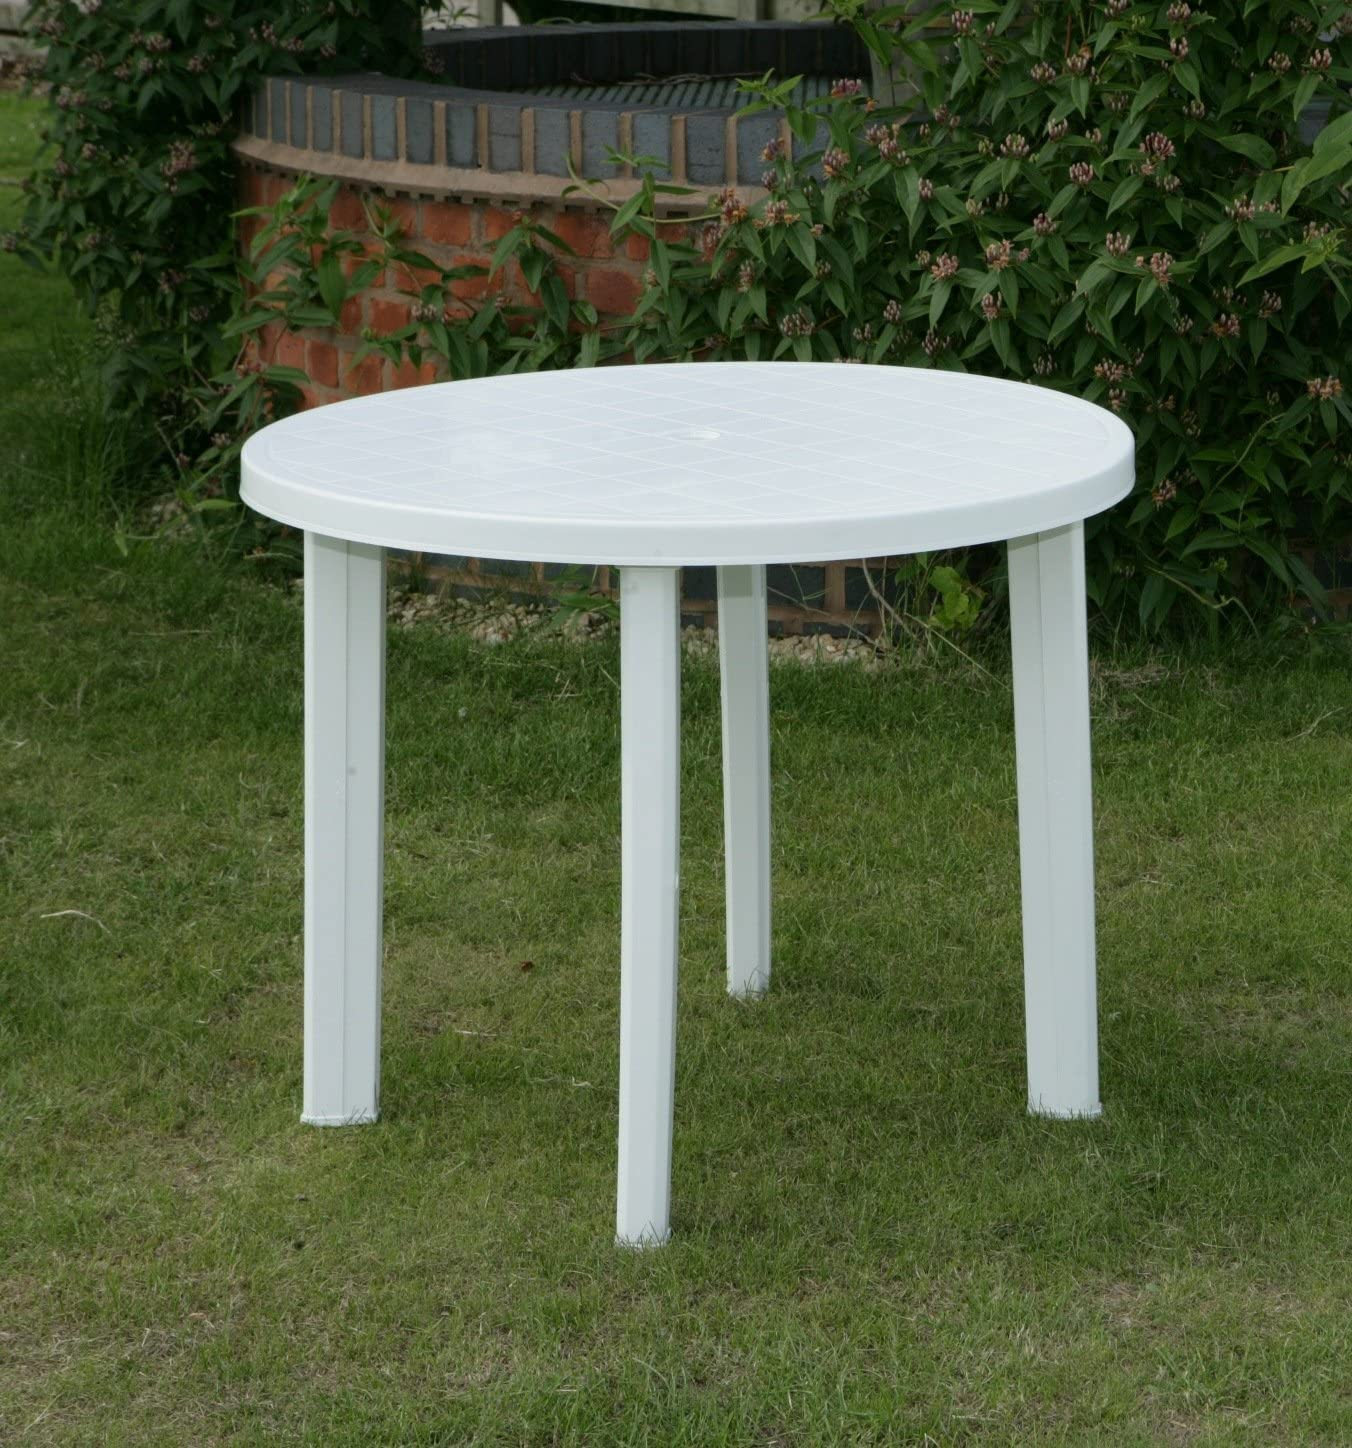 8CM White Resin Patio Table: Amazon.ca: Home & Kitchen